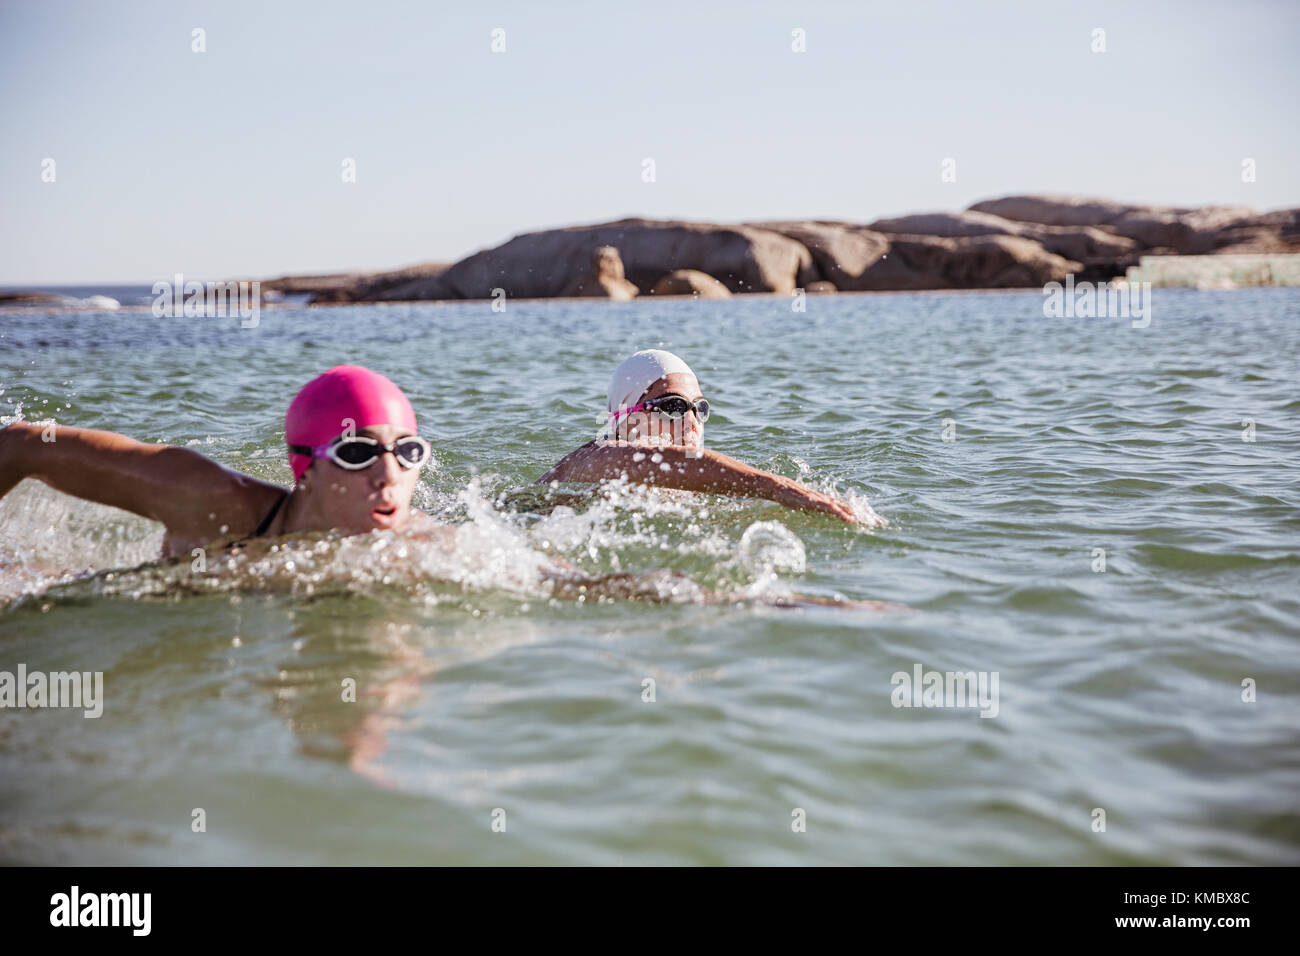 Determined, focused open water swimmers swimming in sunny ocean - Stock Image